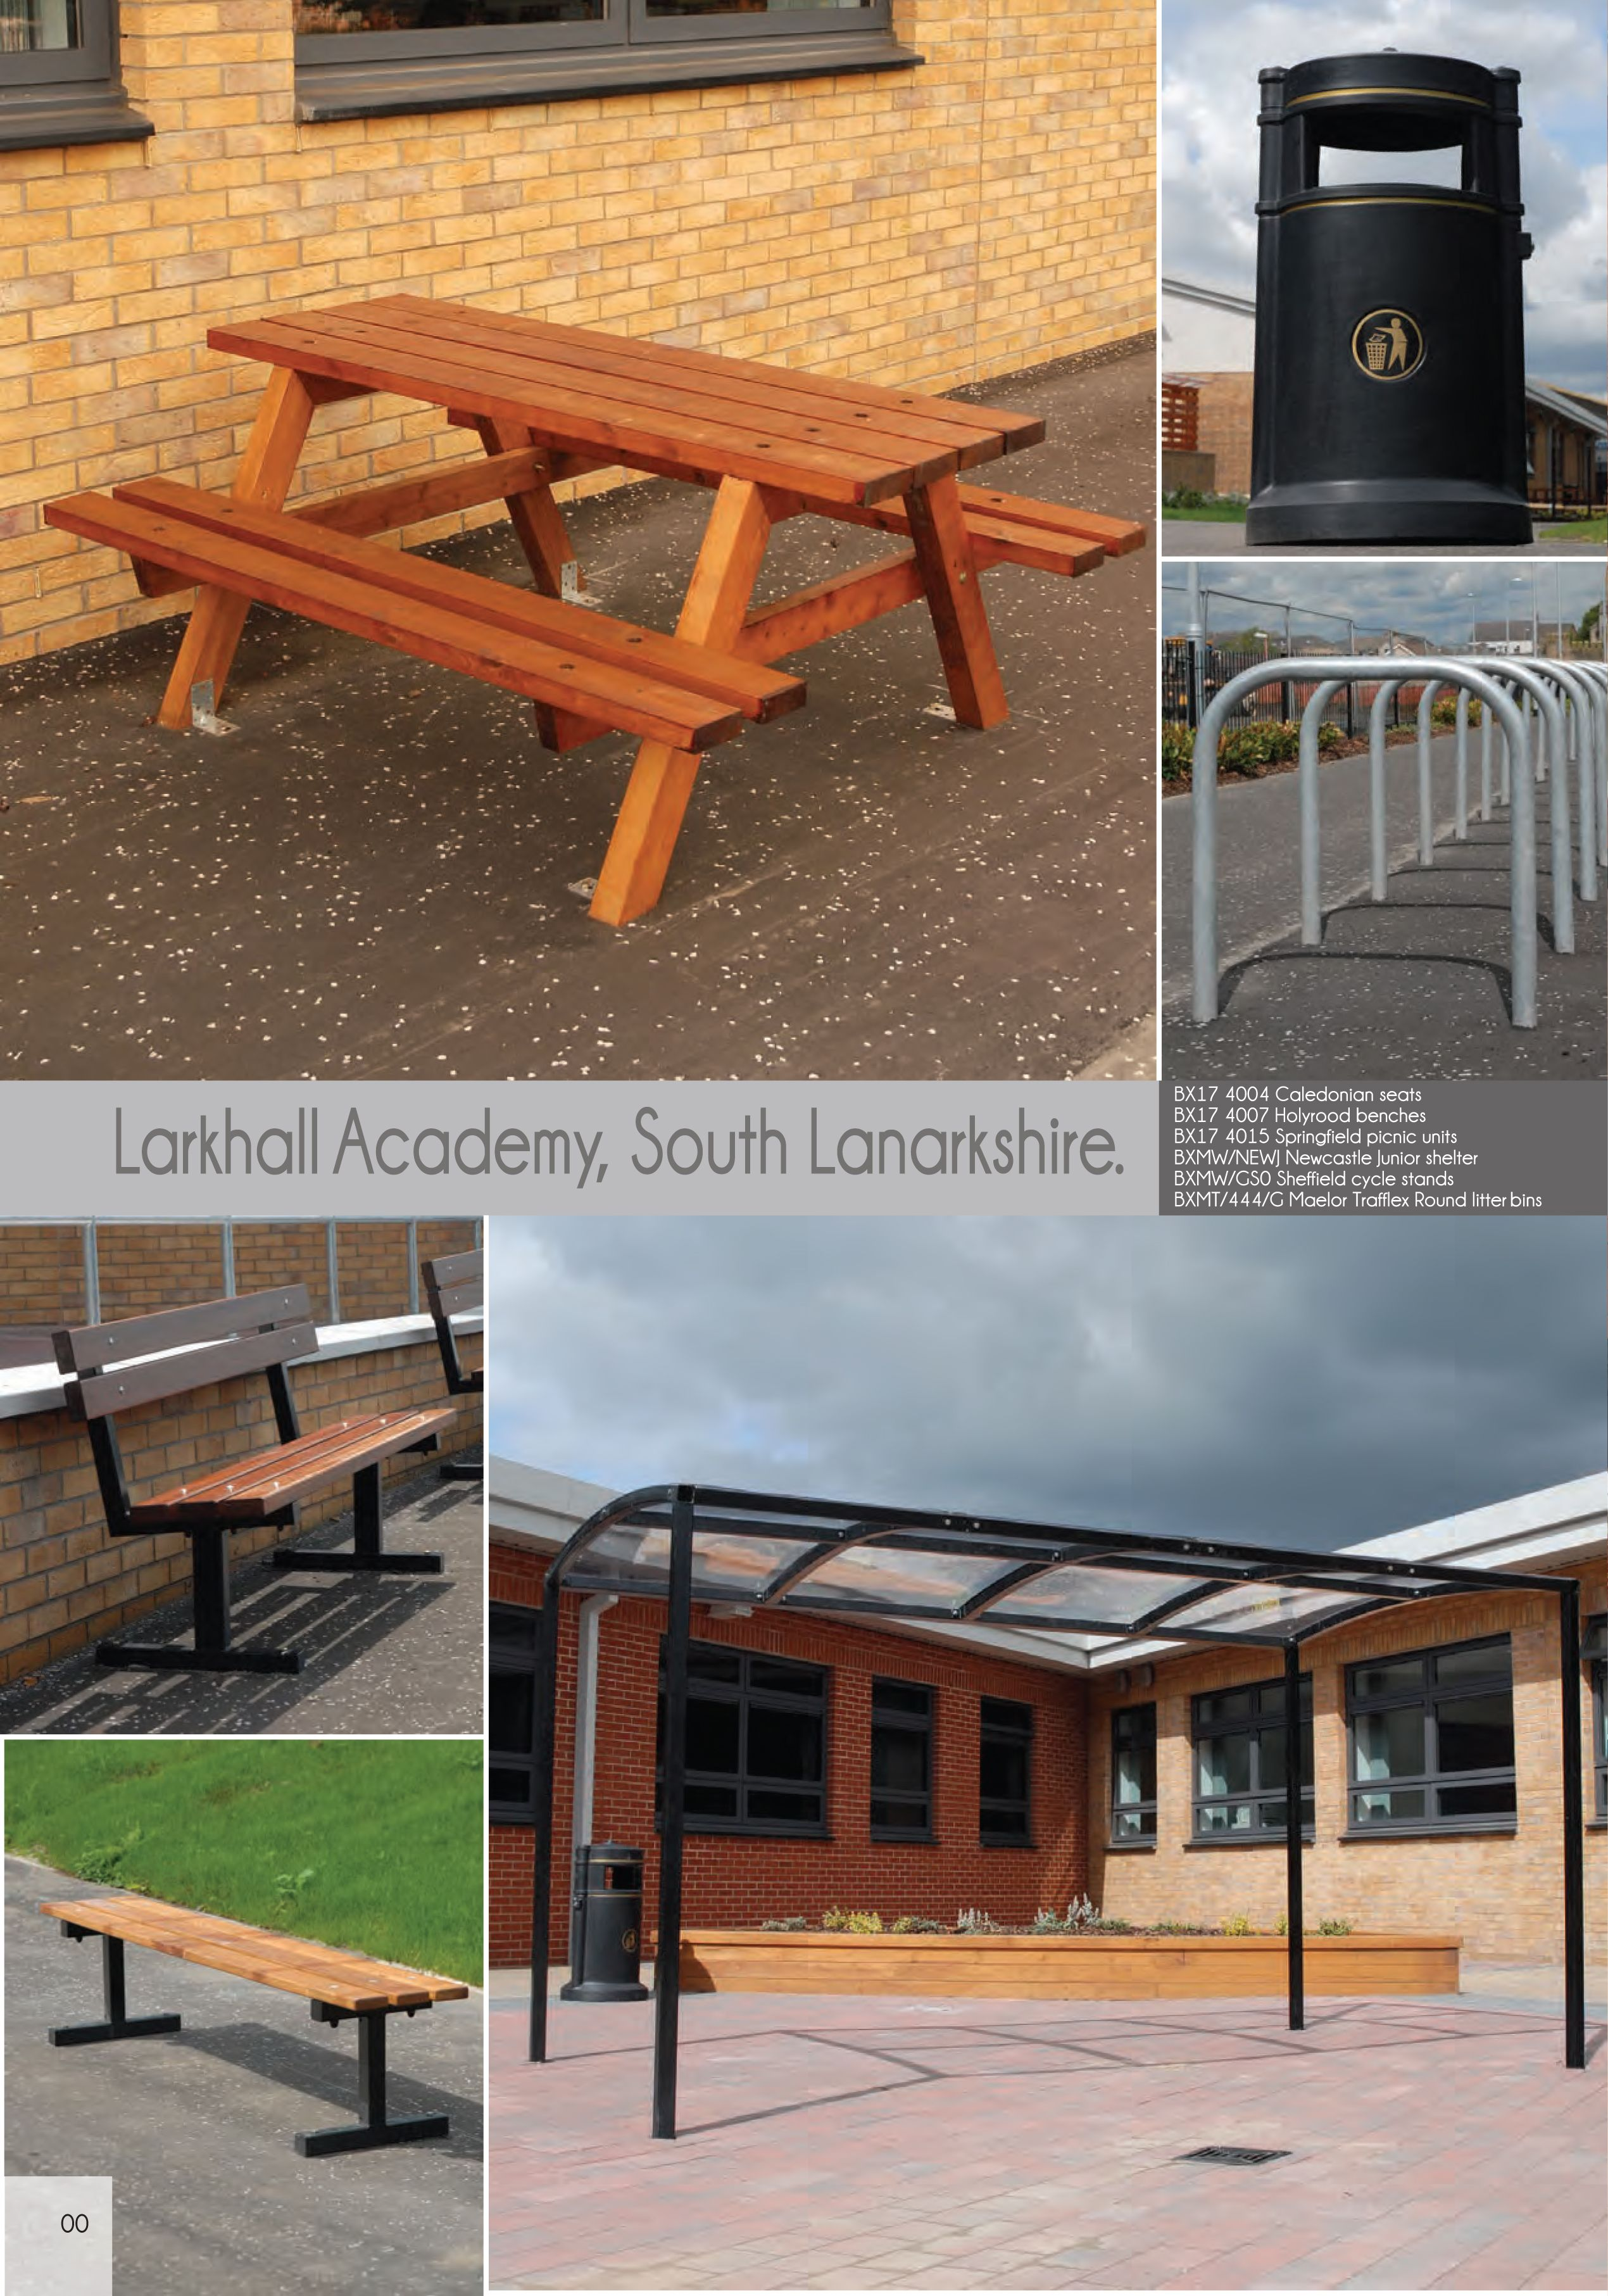 Larkhall Academy South Lanarkshire Street Furniture Benches Seating Cycle Stands